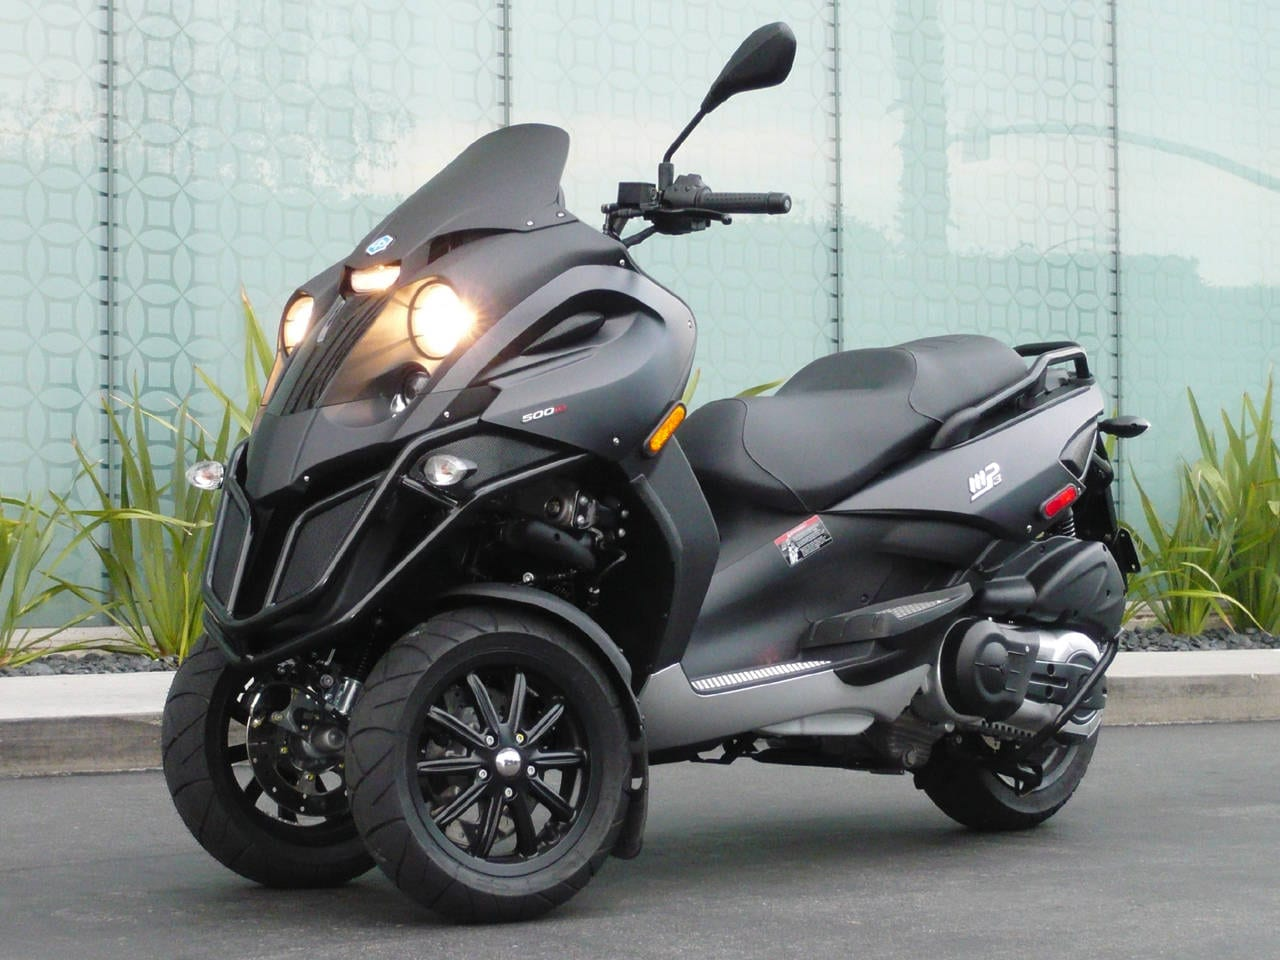 Piaggio MP3 Brake Line Recall Alert